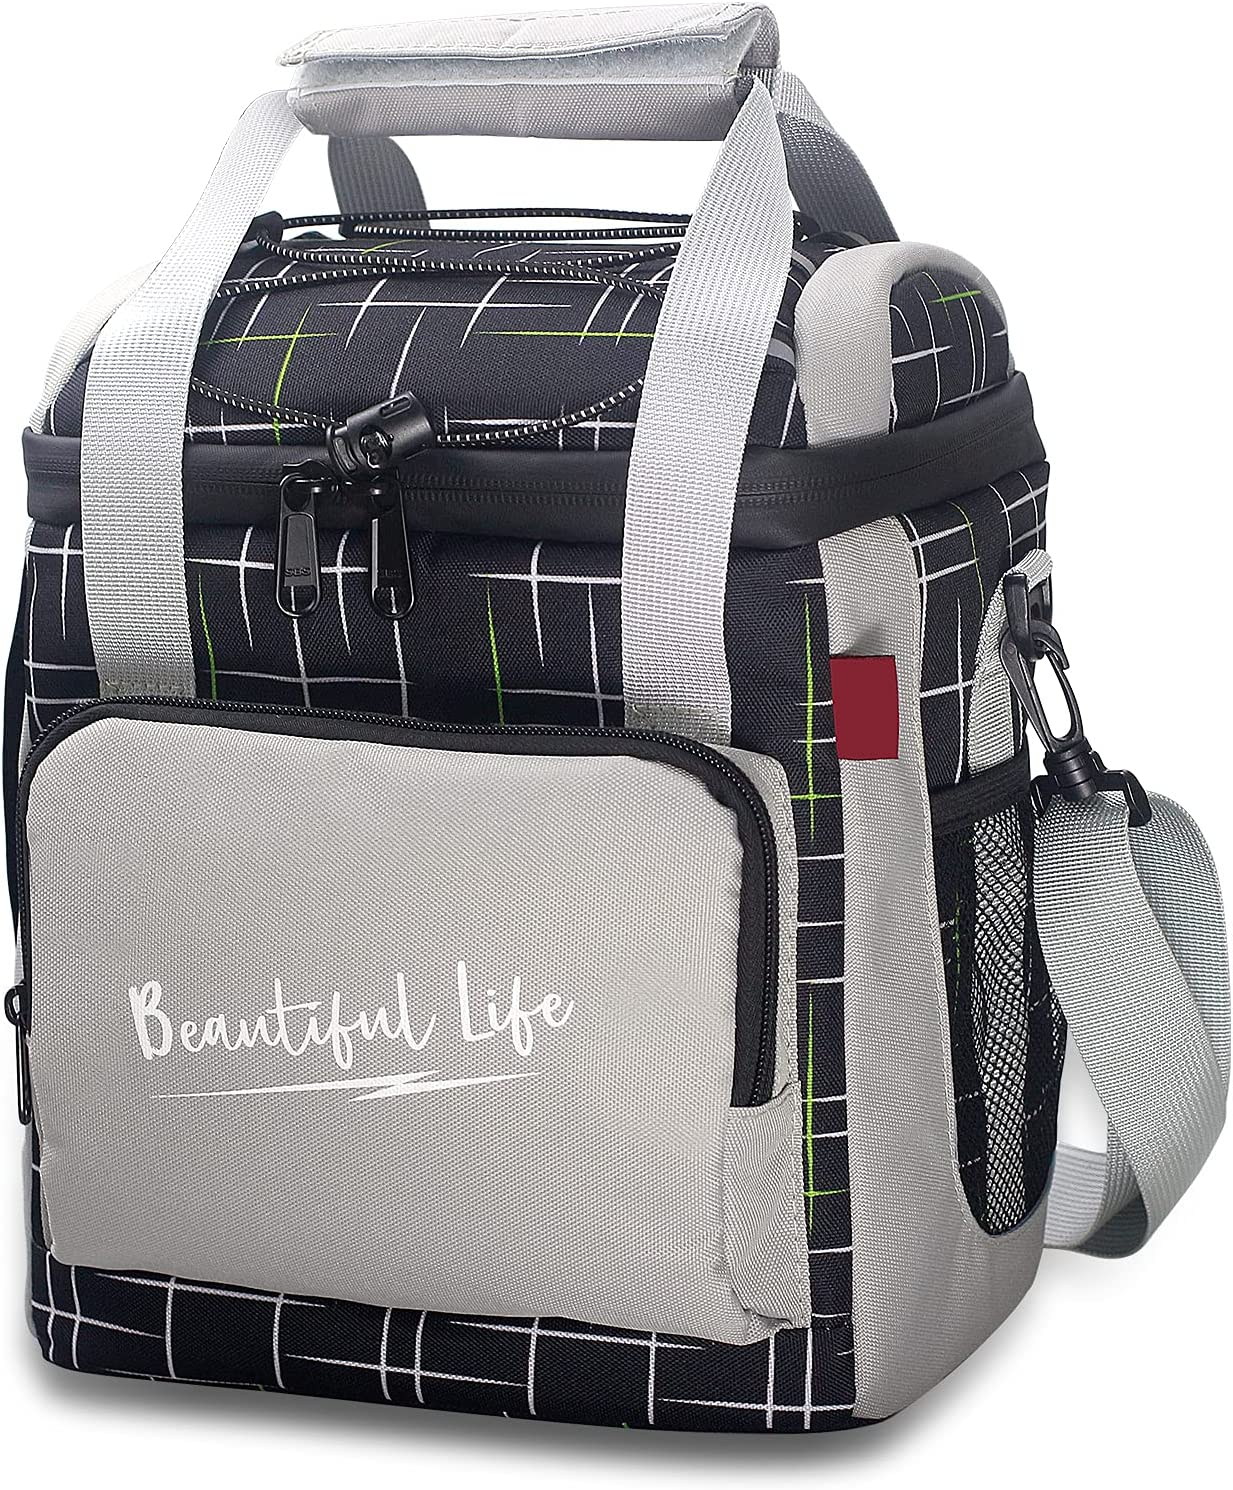 gelugee Insulated Lunch Bags For Cooler Luxury goods Large Leakproof L Women Max 47% OFF